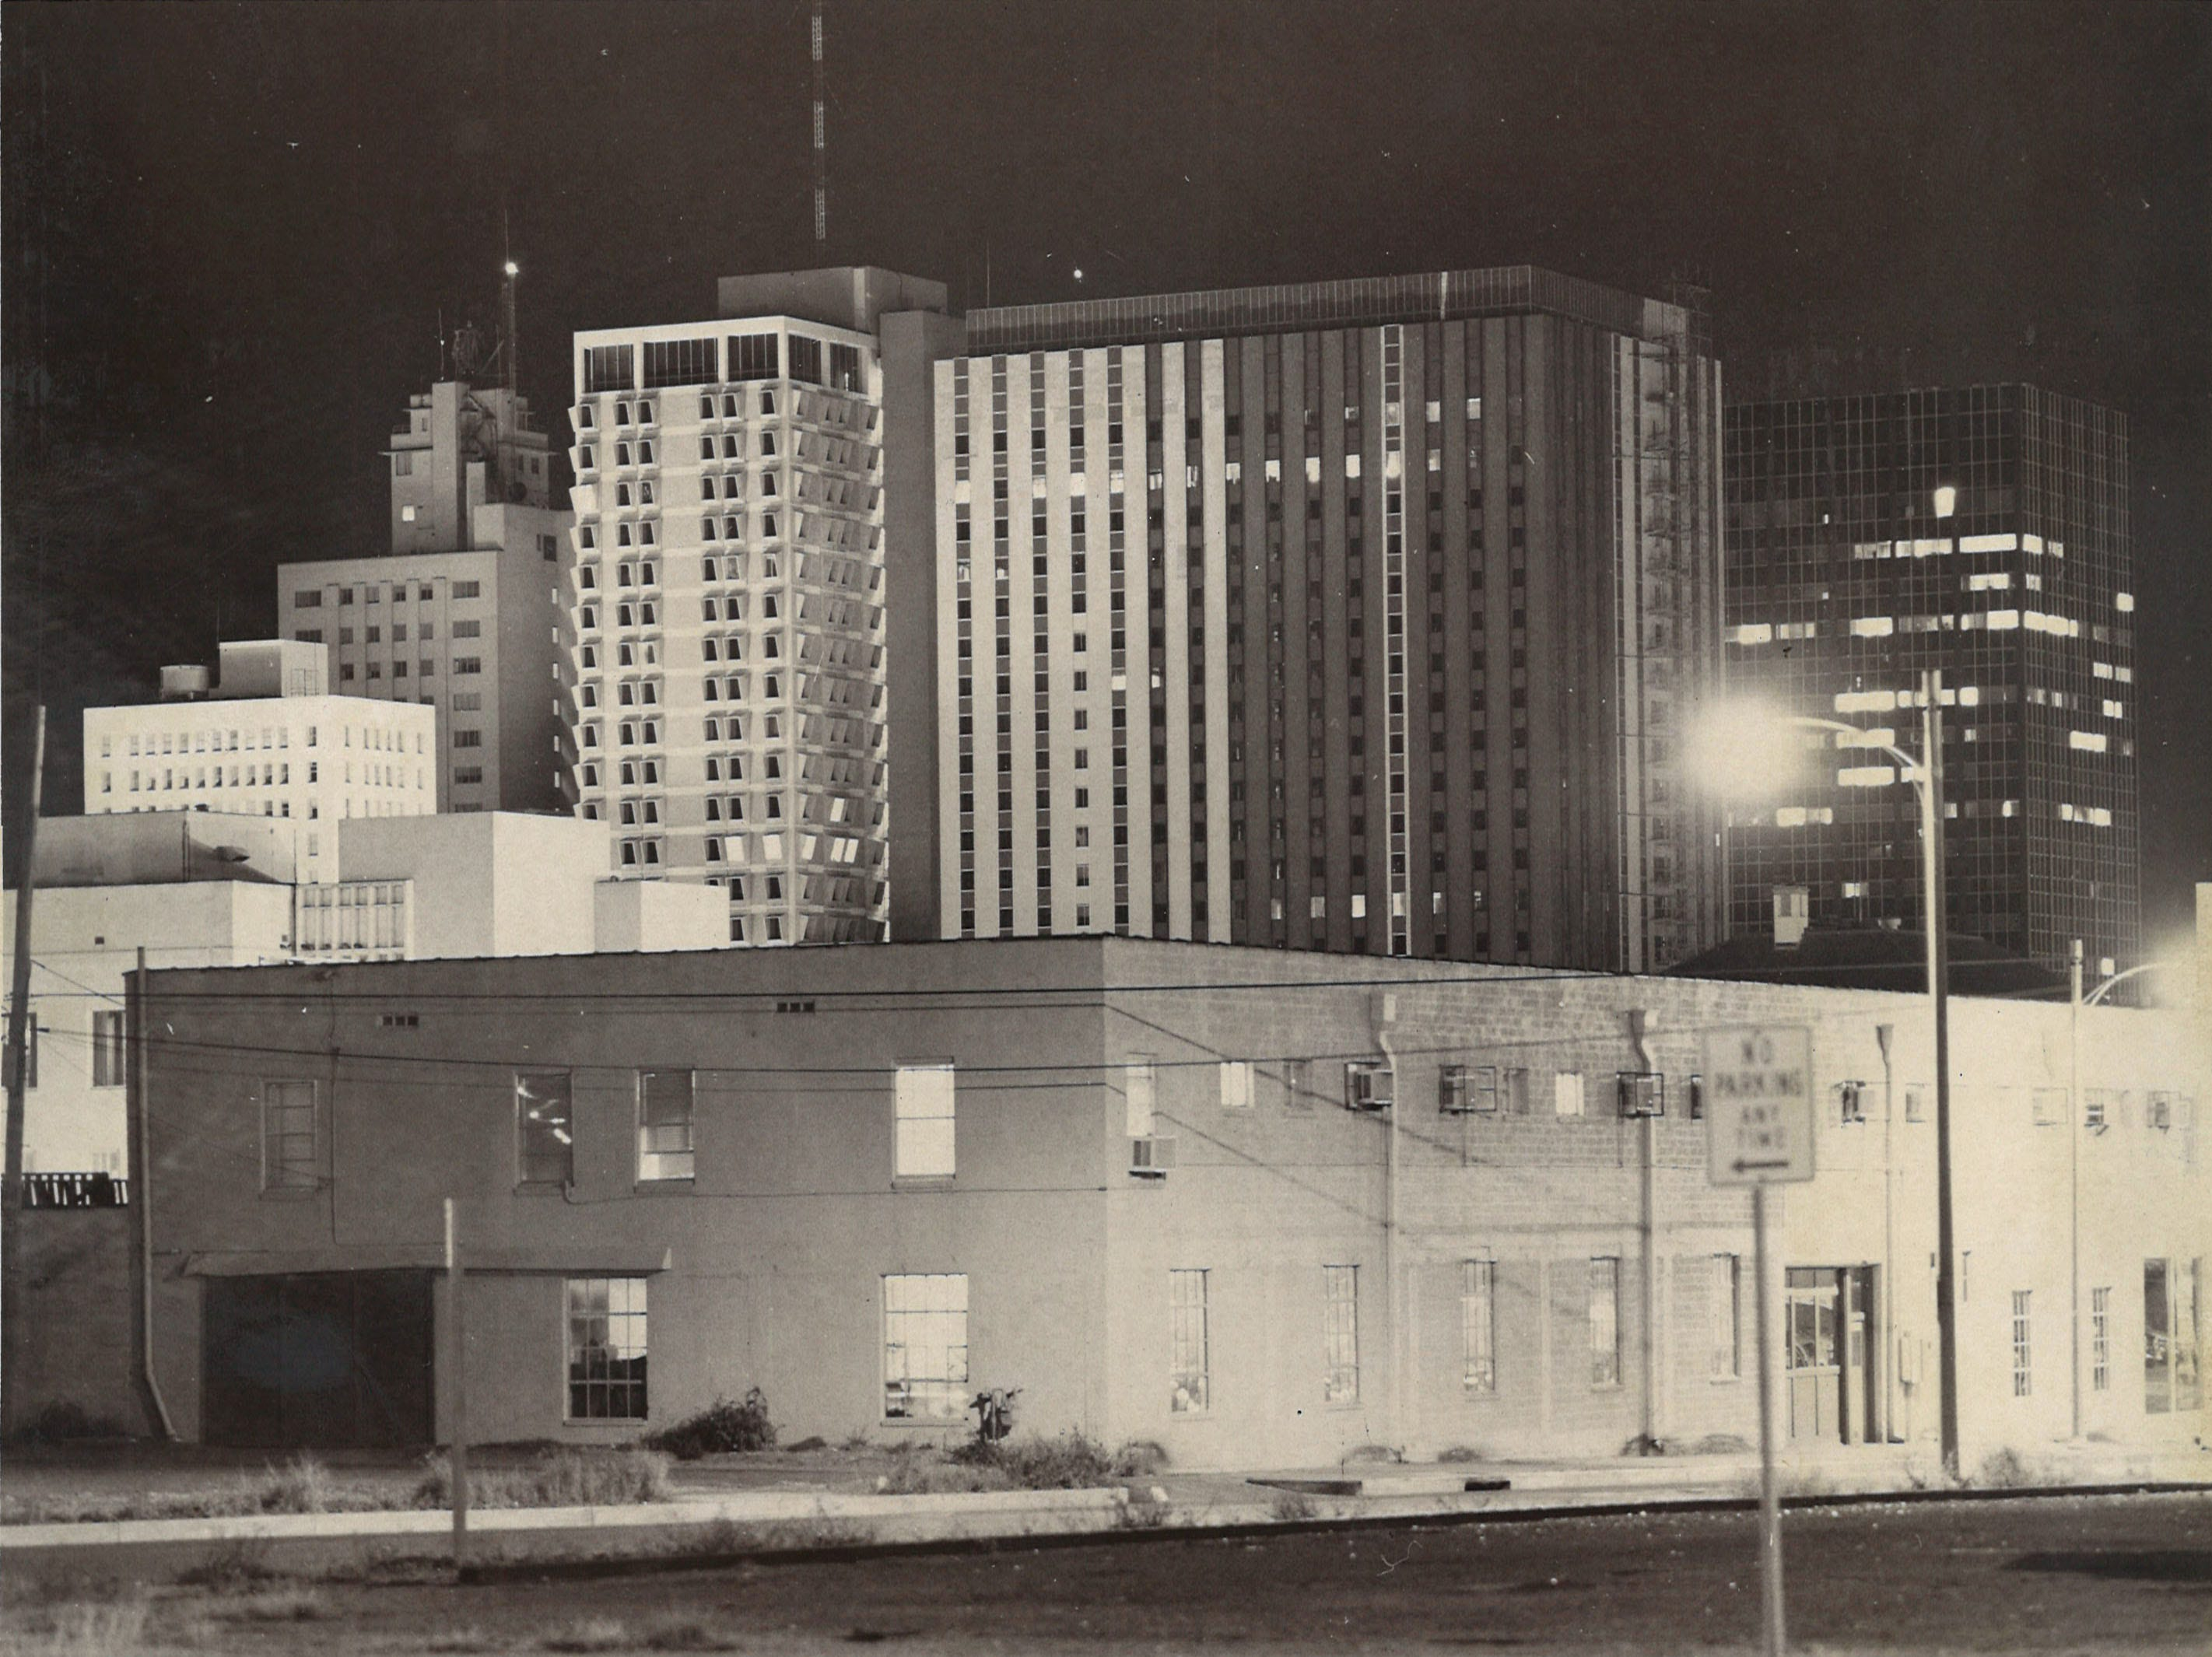 Downtown Corpus Christi in 1973 looking toward uptown.